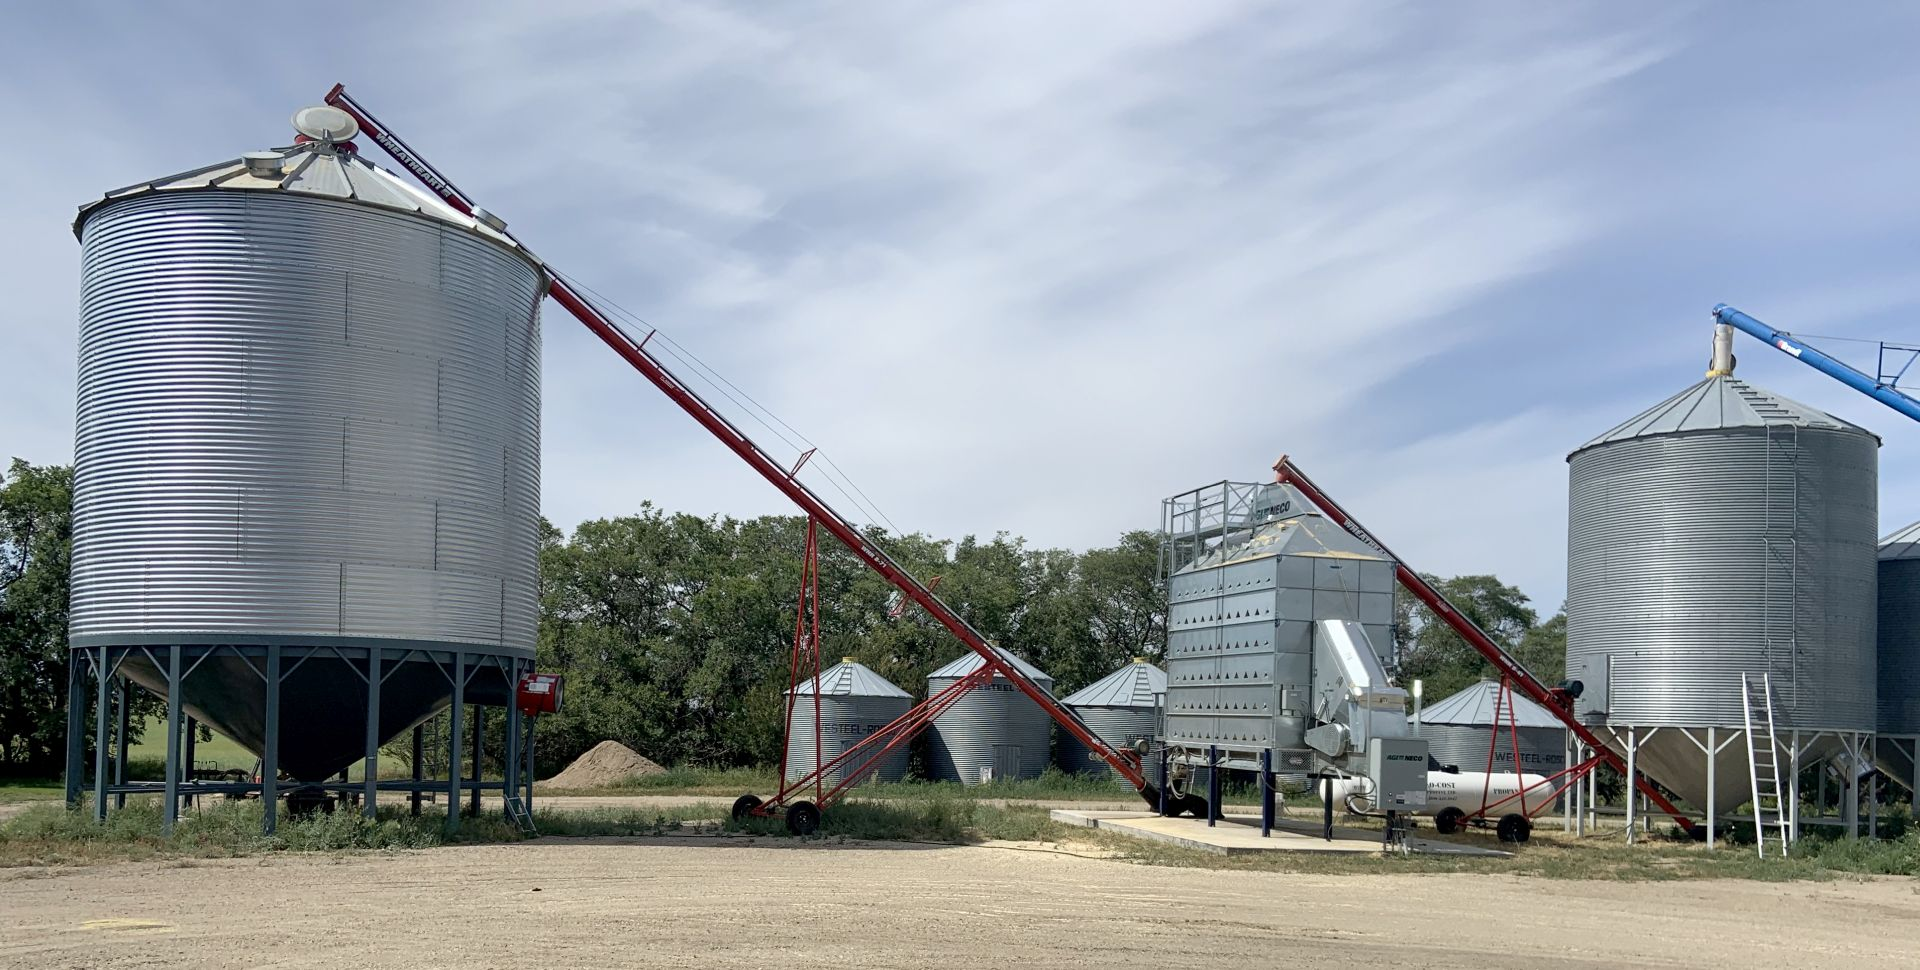 NECO Grain Dryer setup with 2 bins